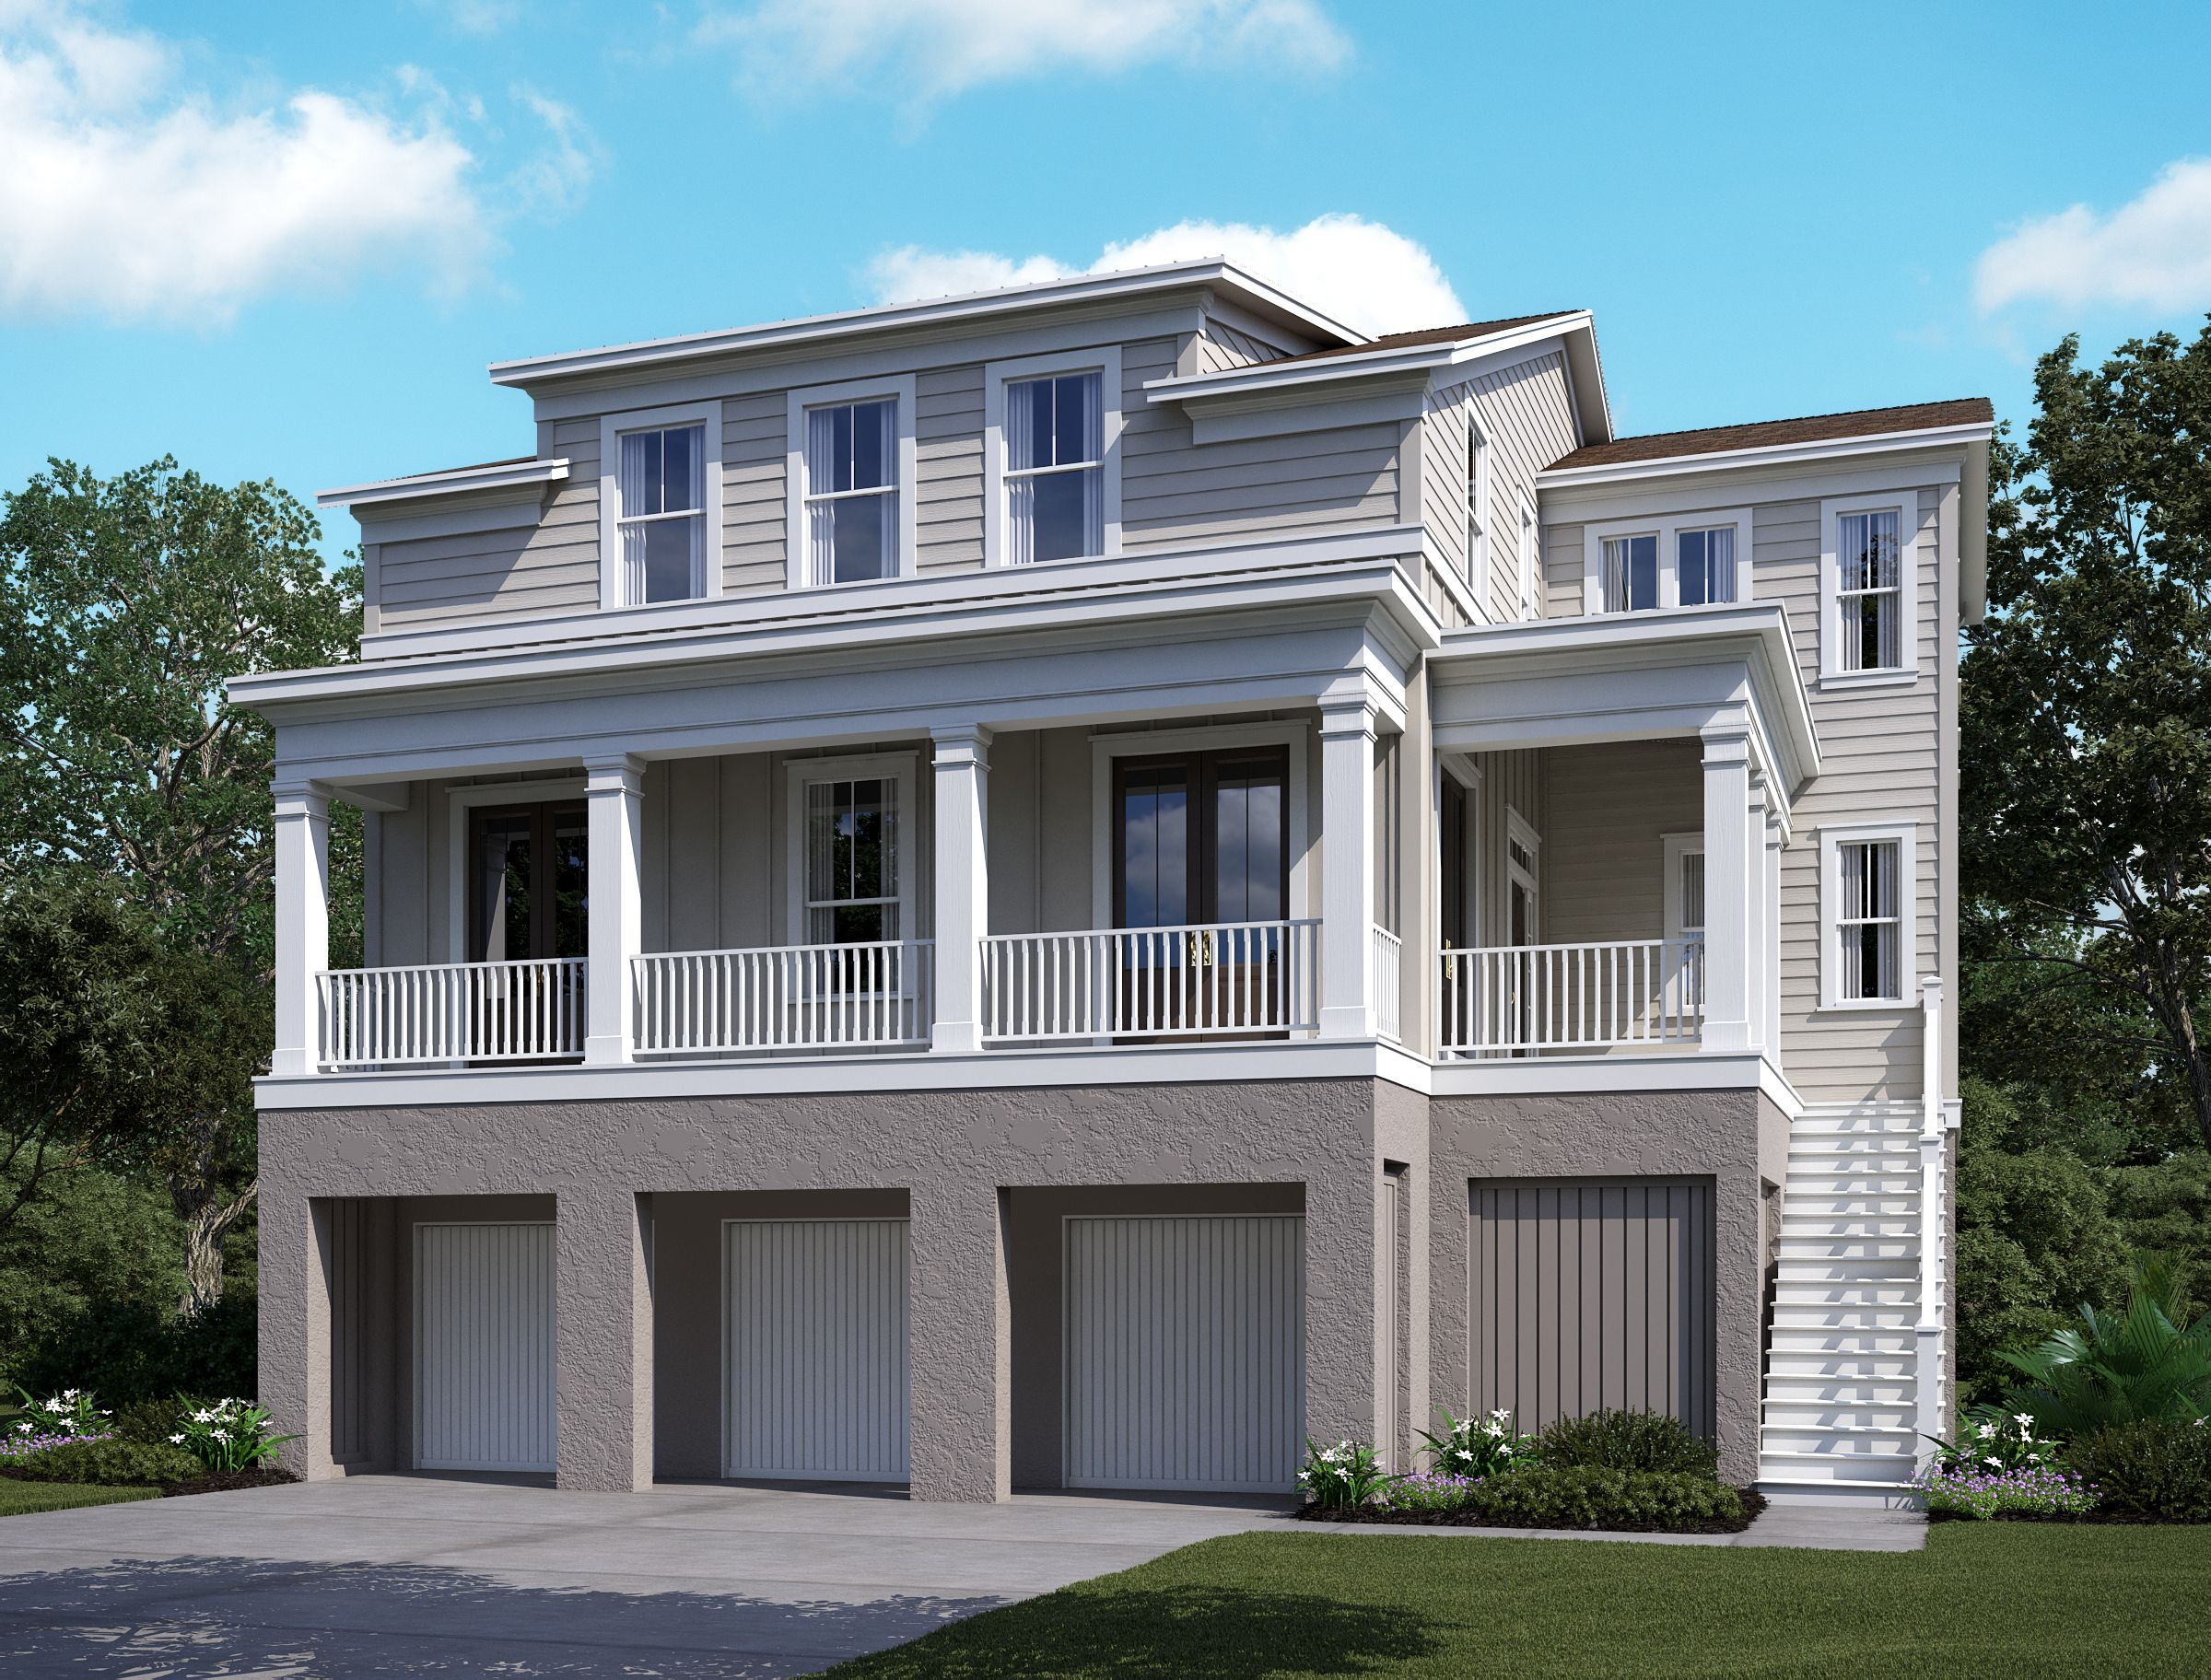 Single Family for Sale at Stratton By The Sound - Palmetto 1400 Stratton Place Mount Pleasant, South Carolina 29466 United States